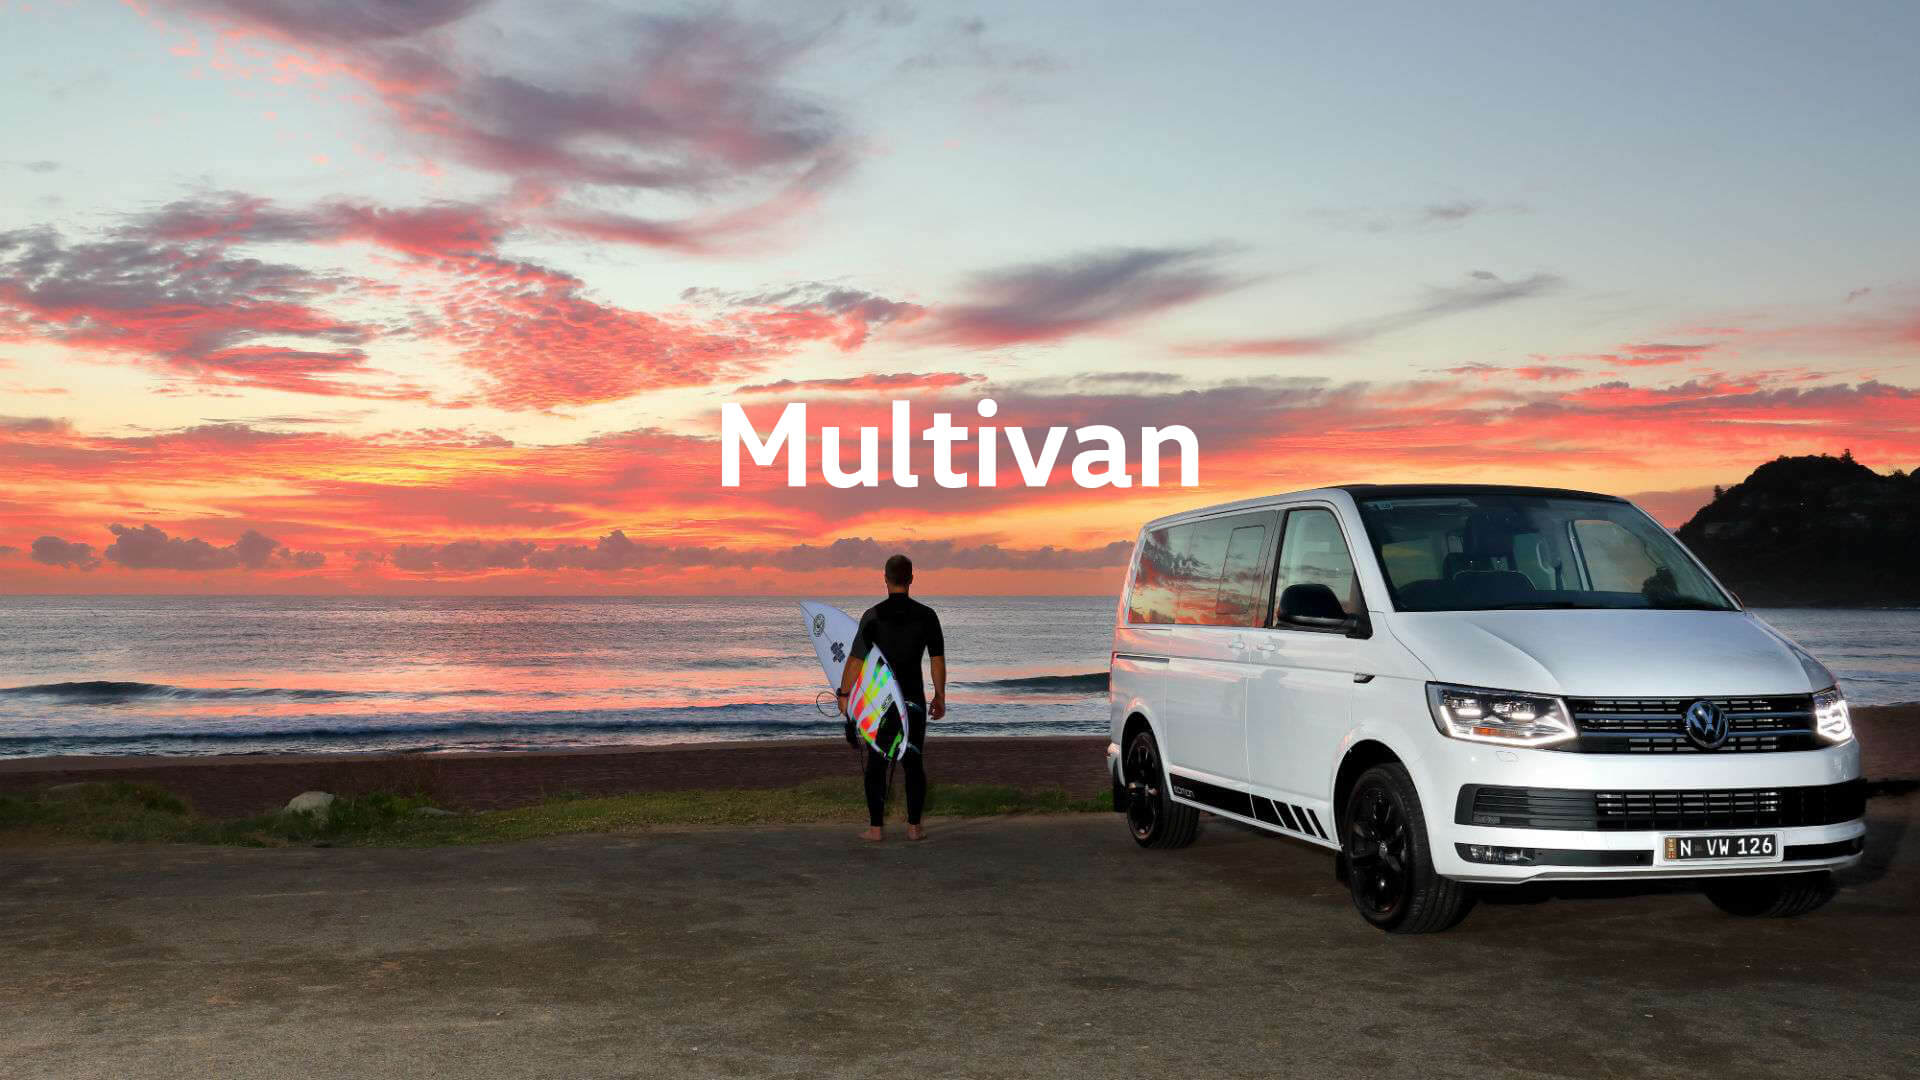 A lot goes into our Multivan. Image